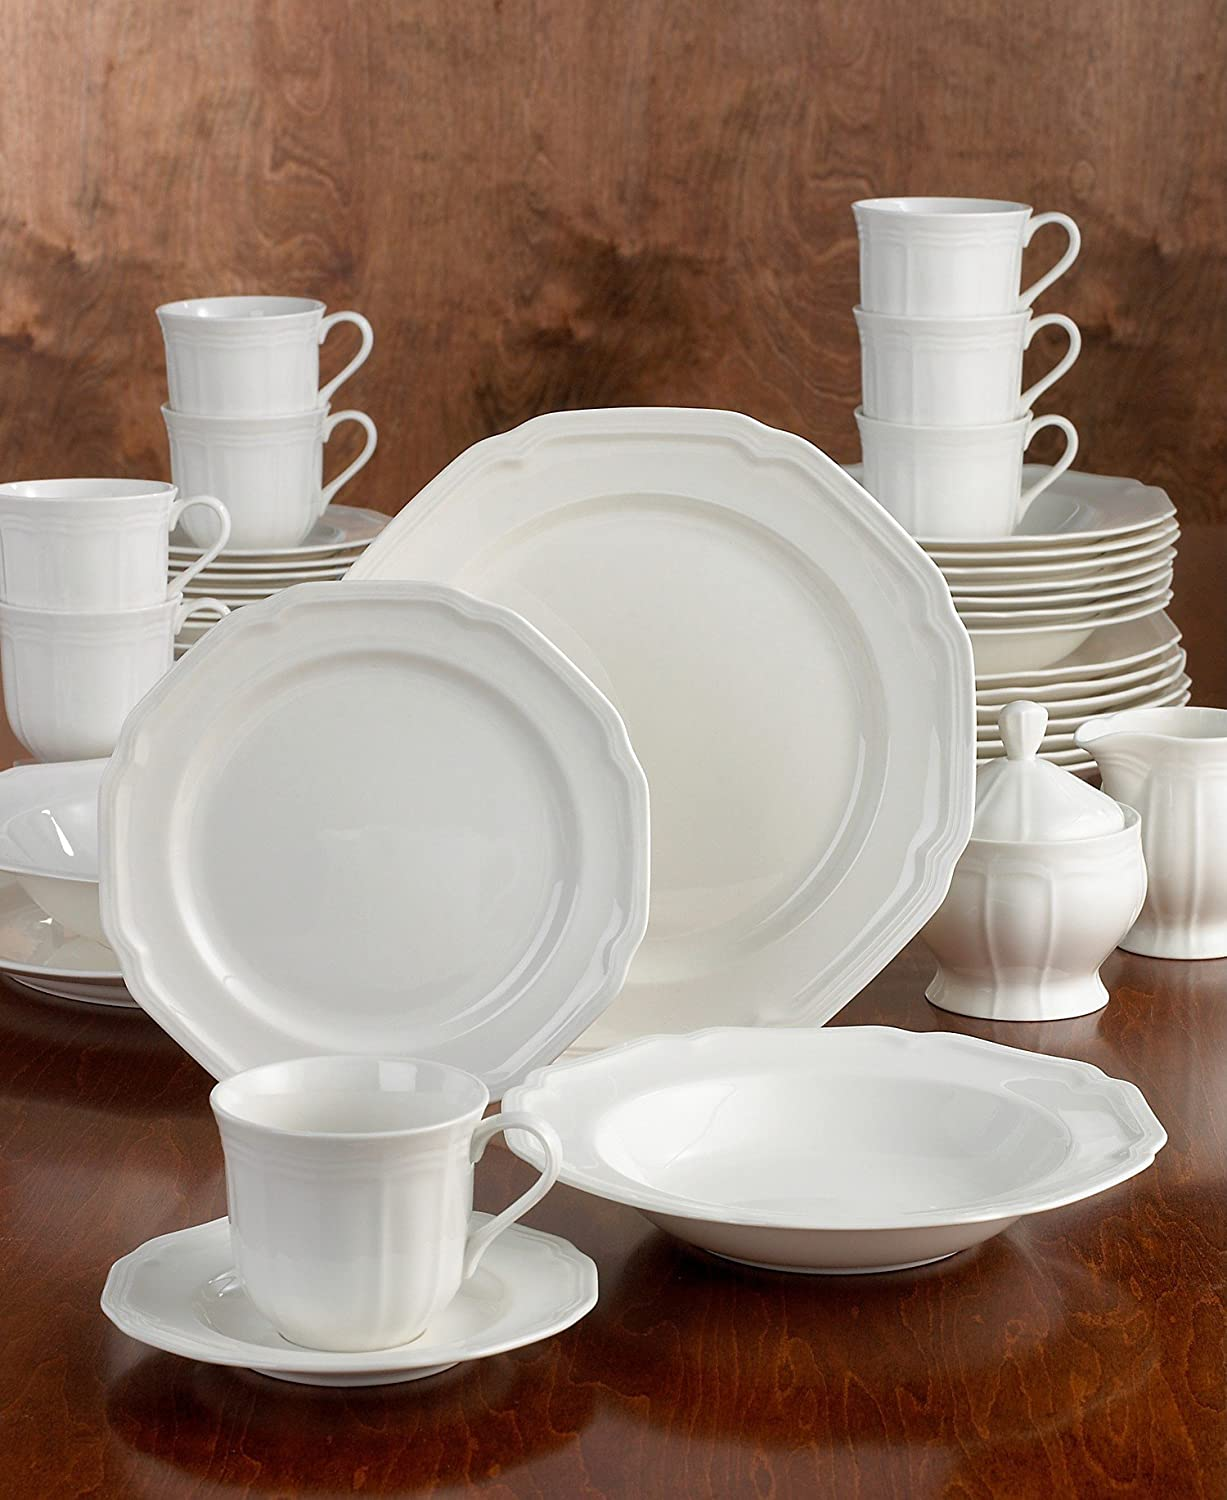 Image gallery mikasa dinnerware for Kitchen dish sets